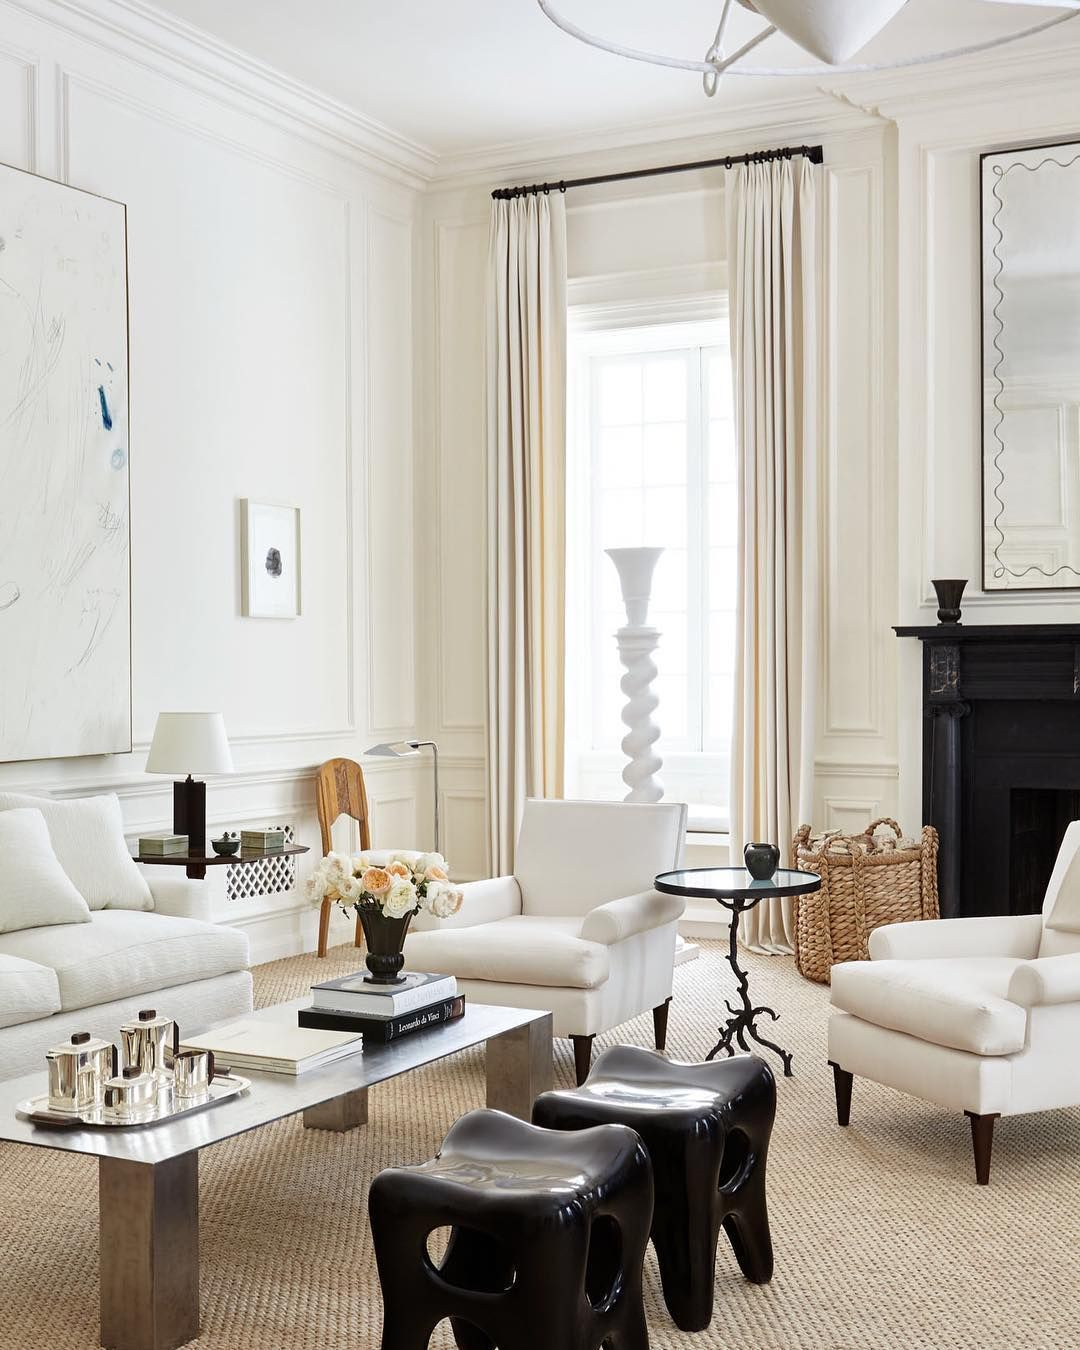 A neutral living room with a sisal rug and modern accents interior